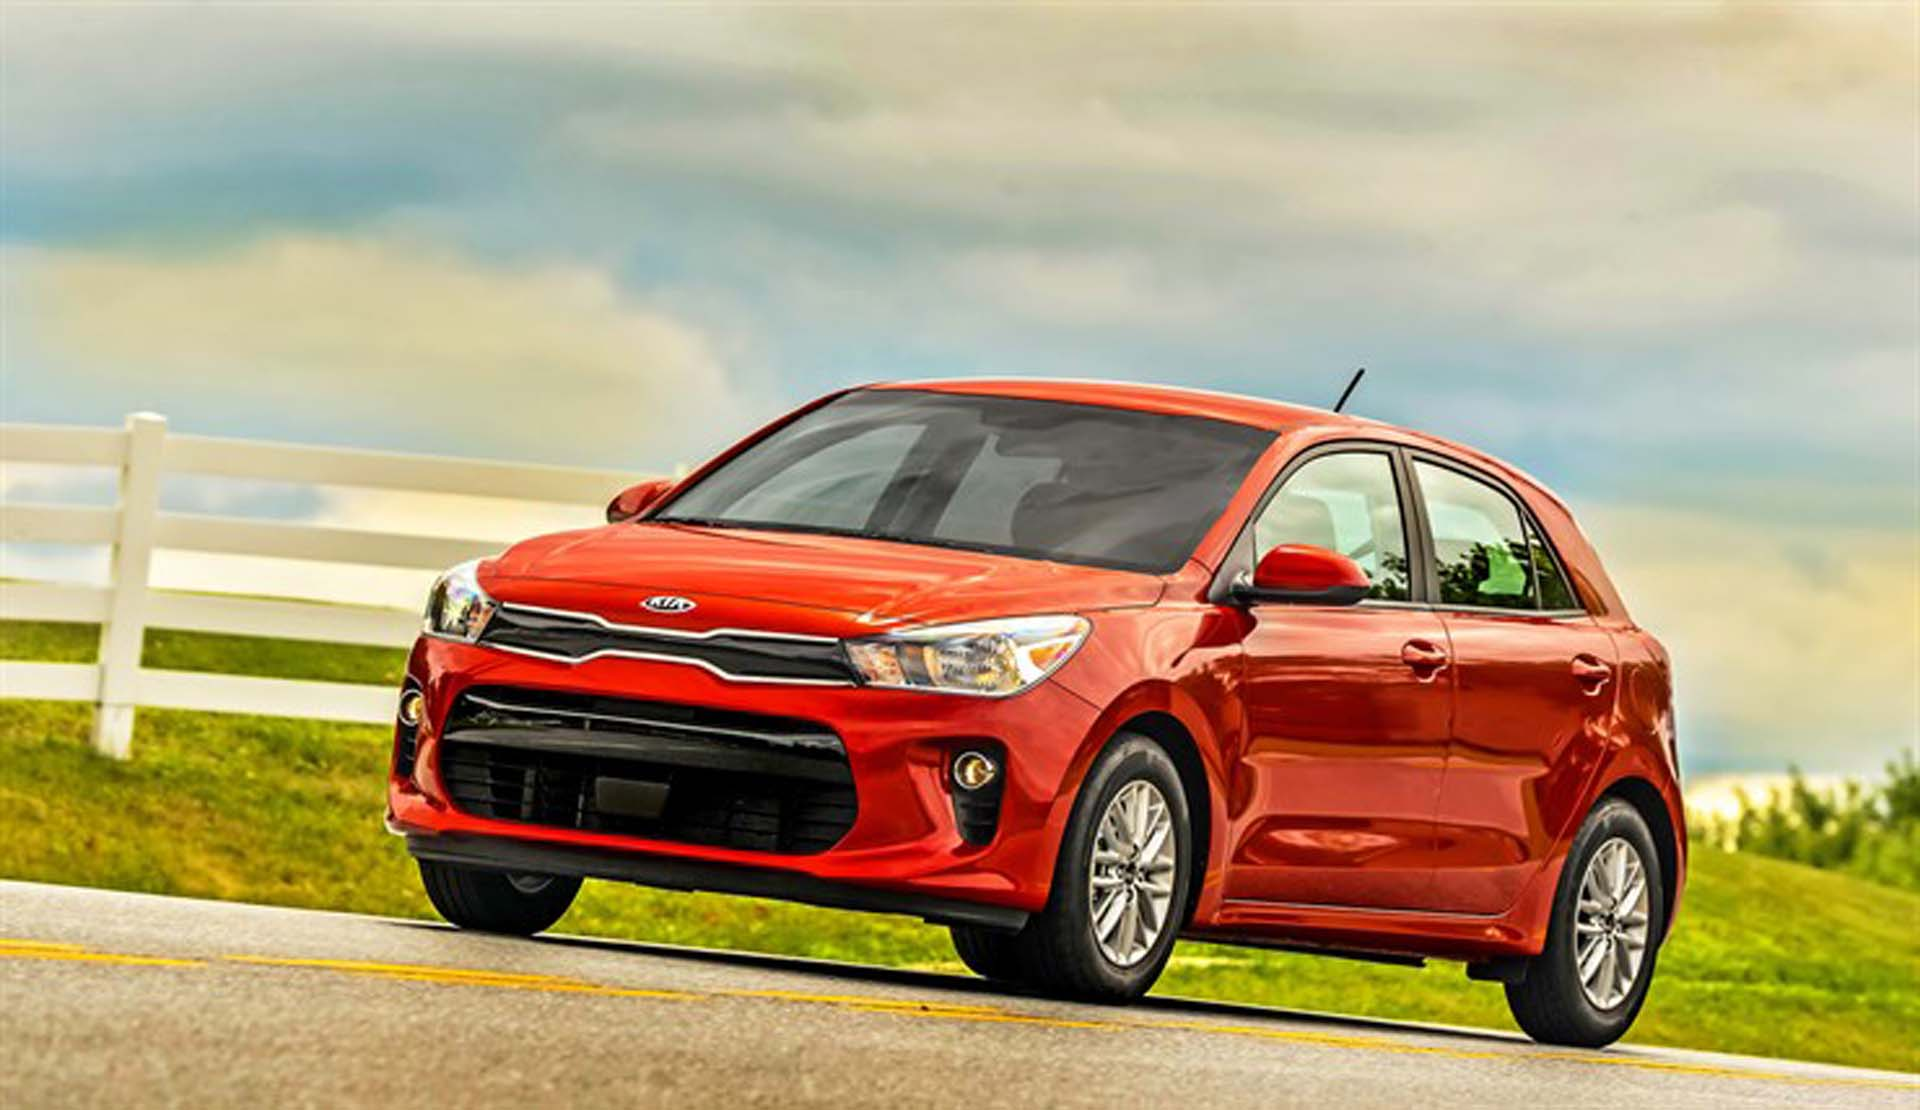 2019 kia rio lineup sliced  diced  priced from  16 195